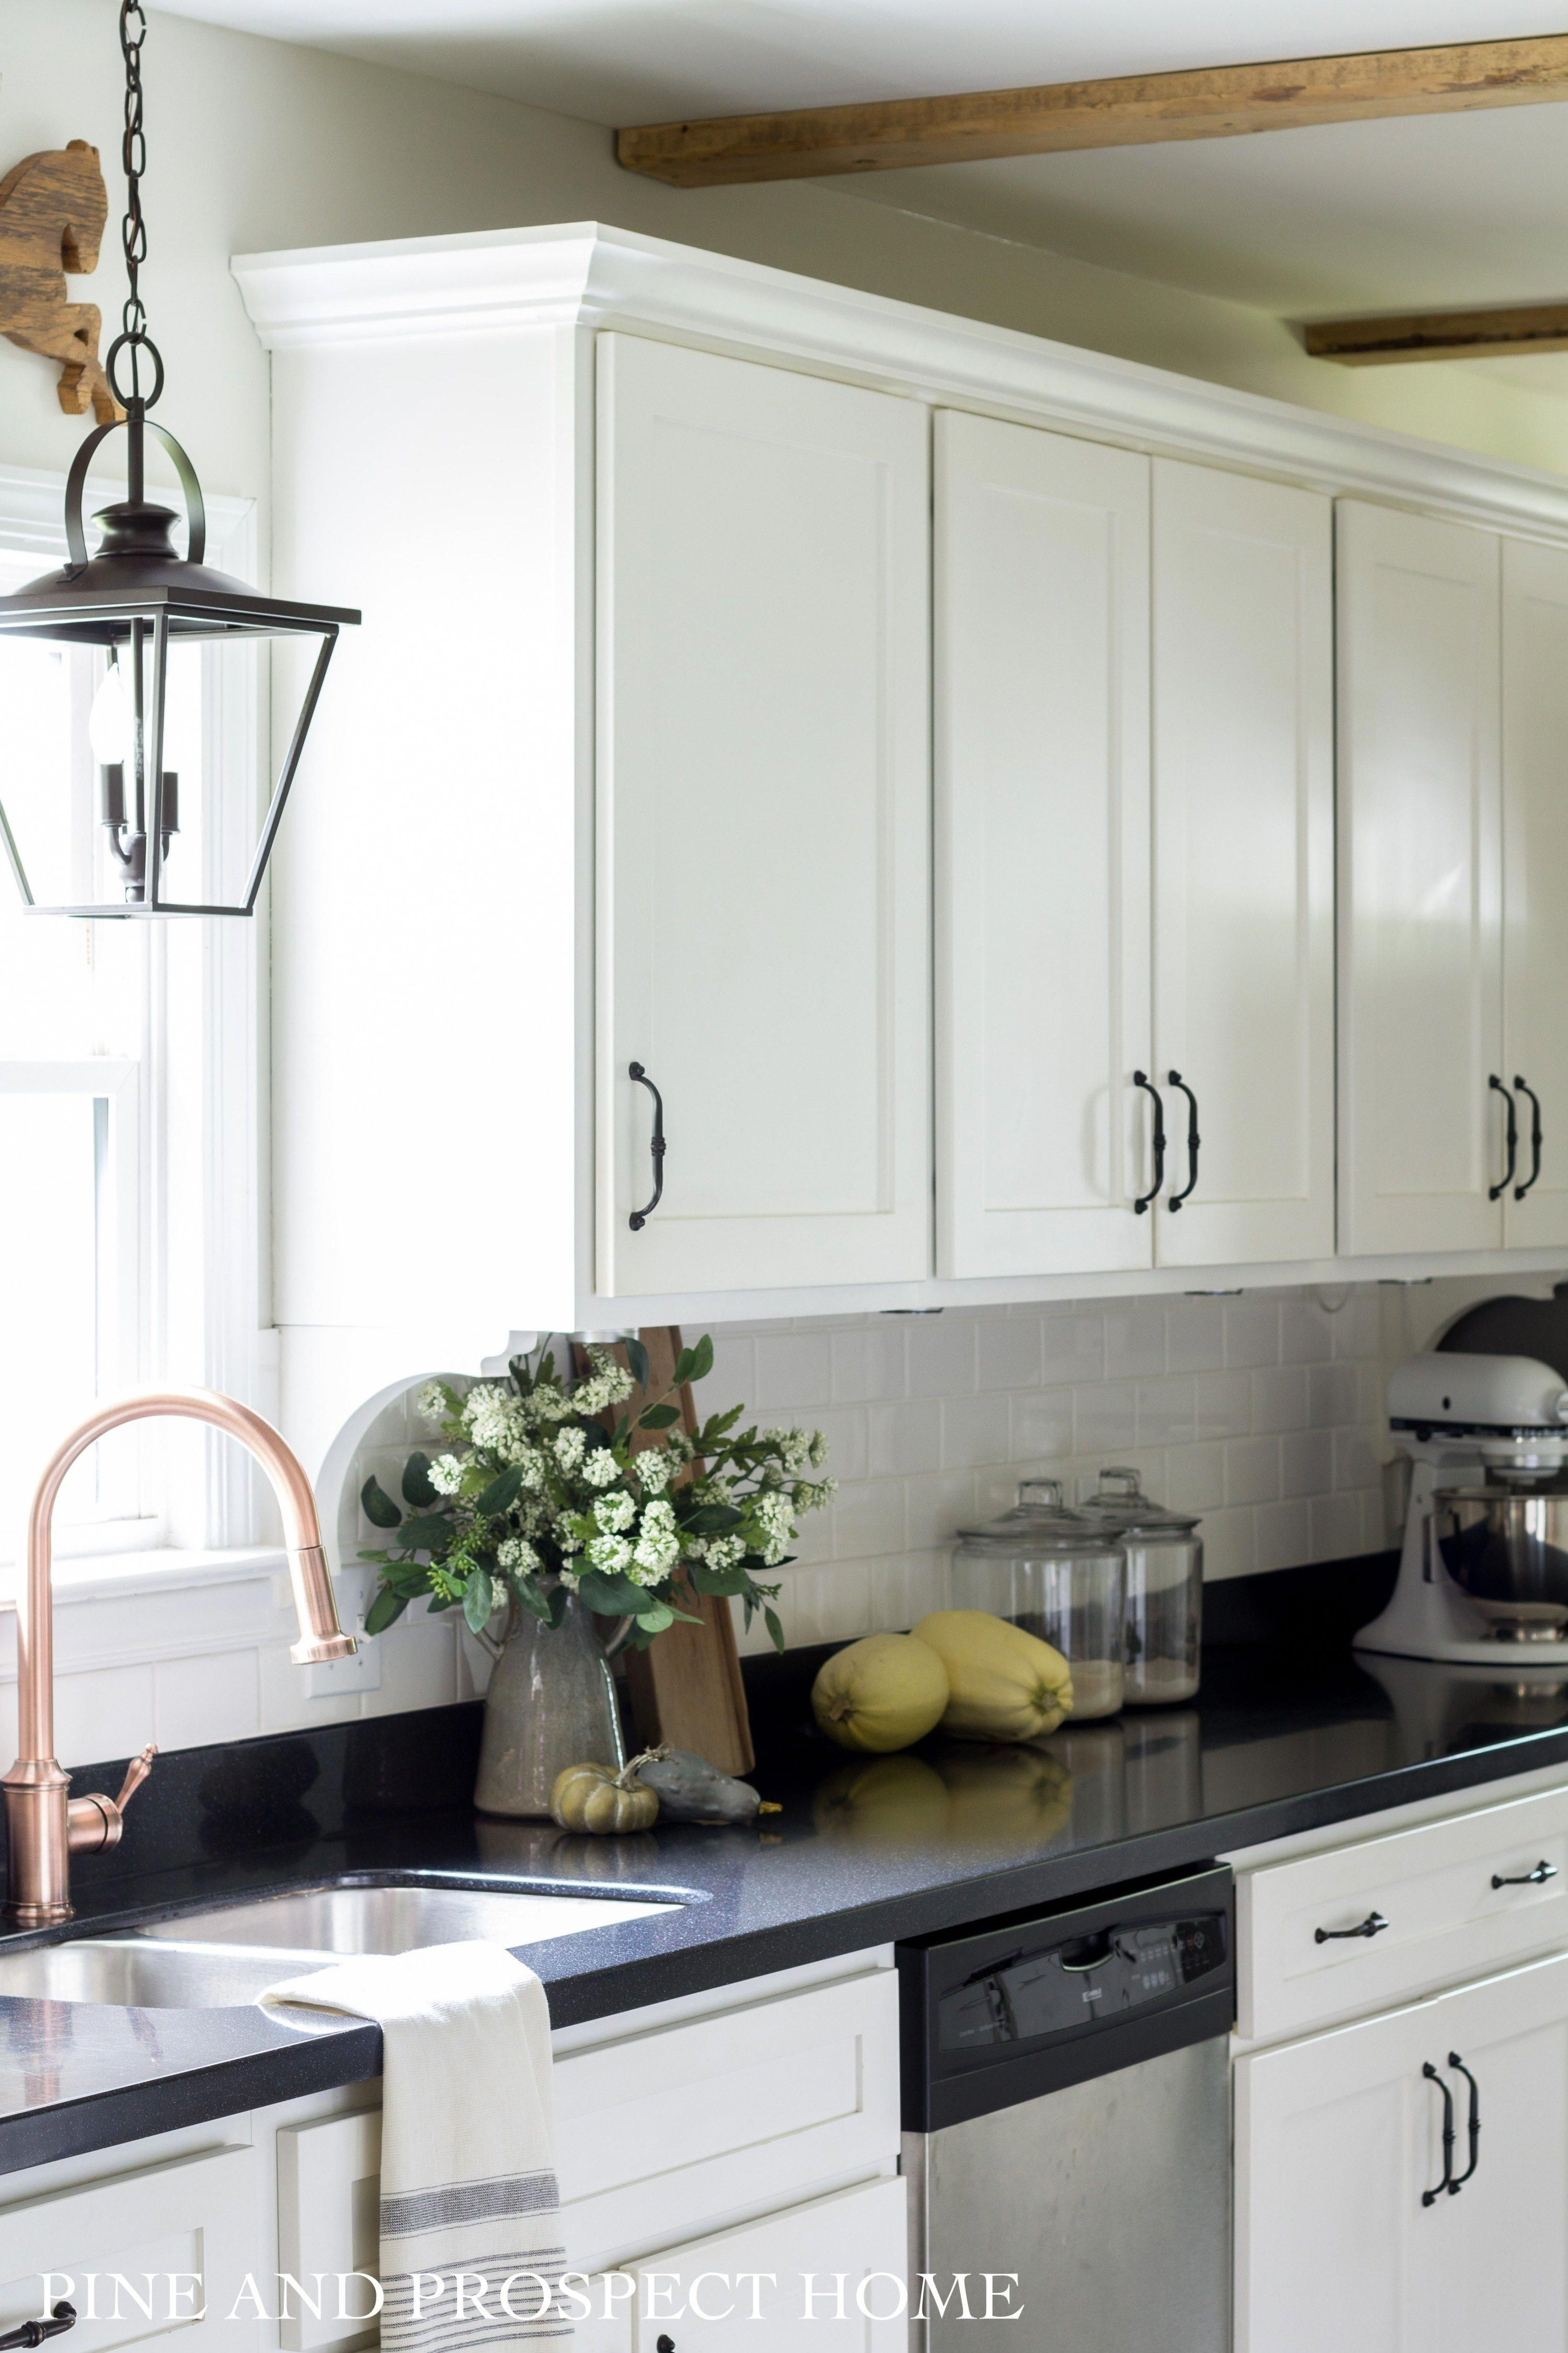 Rustic modern galley style kitchen with white and